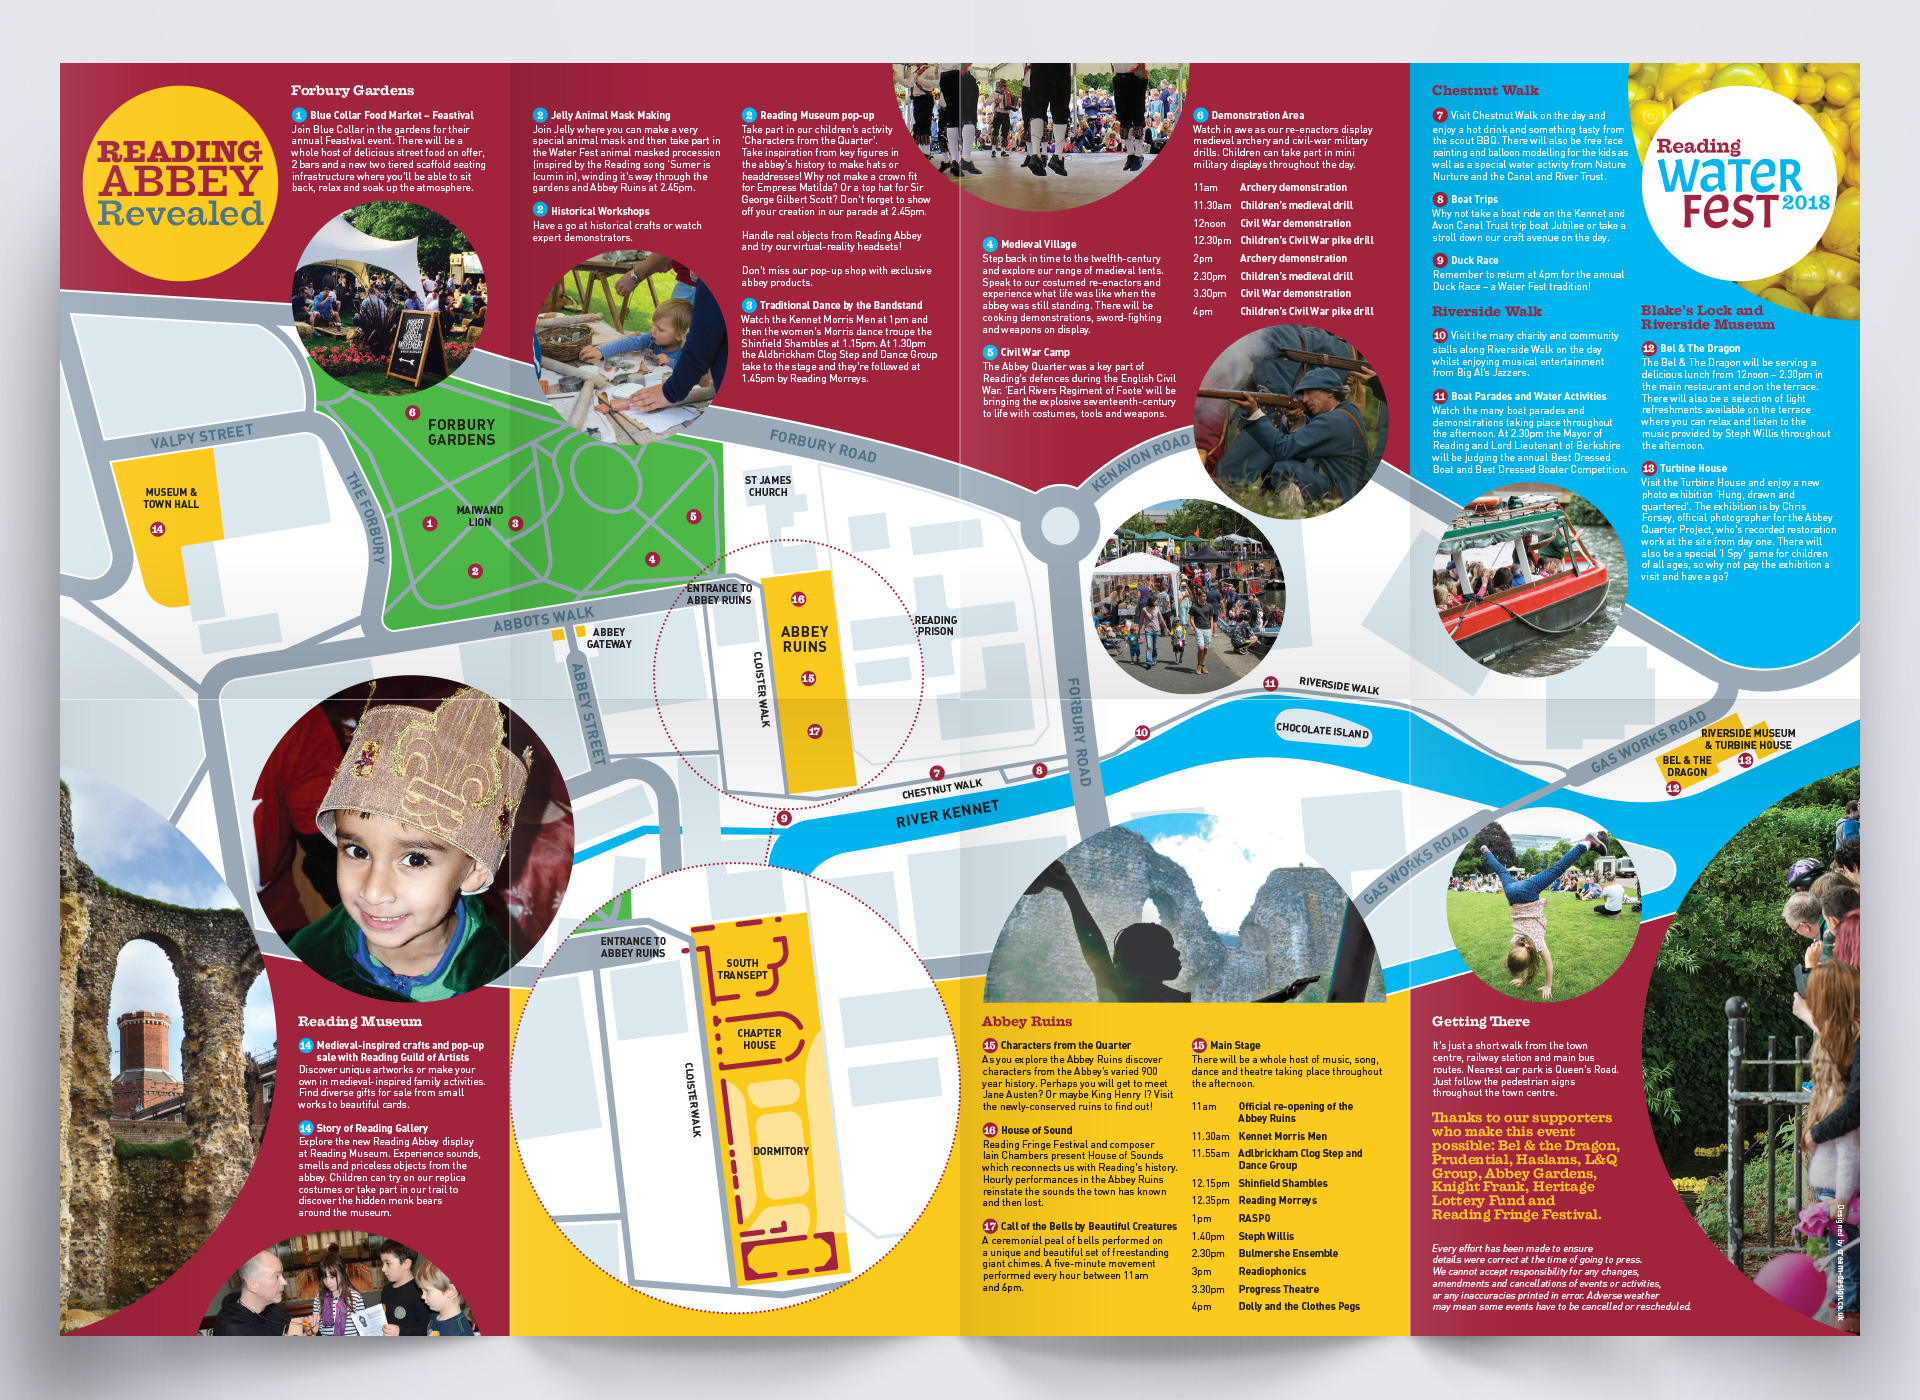 Reading Abbey Revealed and Water Fest Souvenir Map and Programme